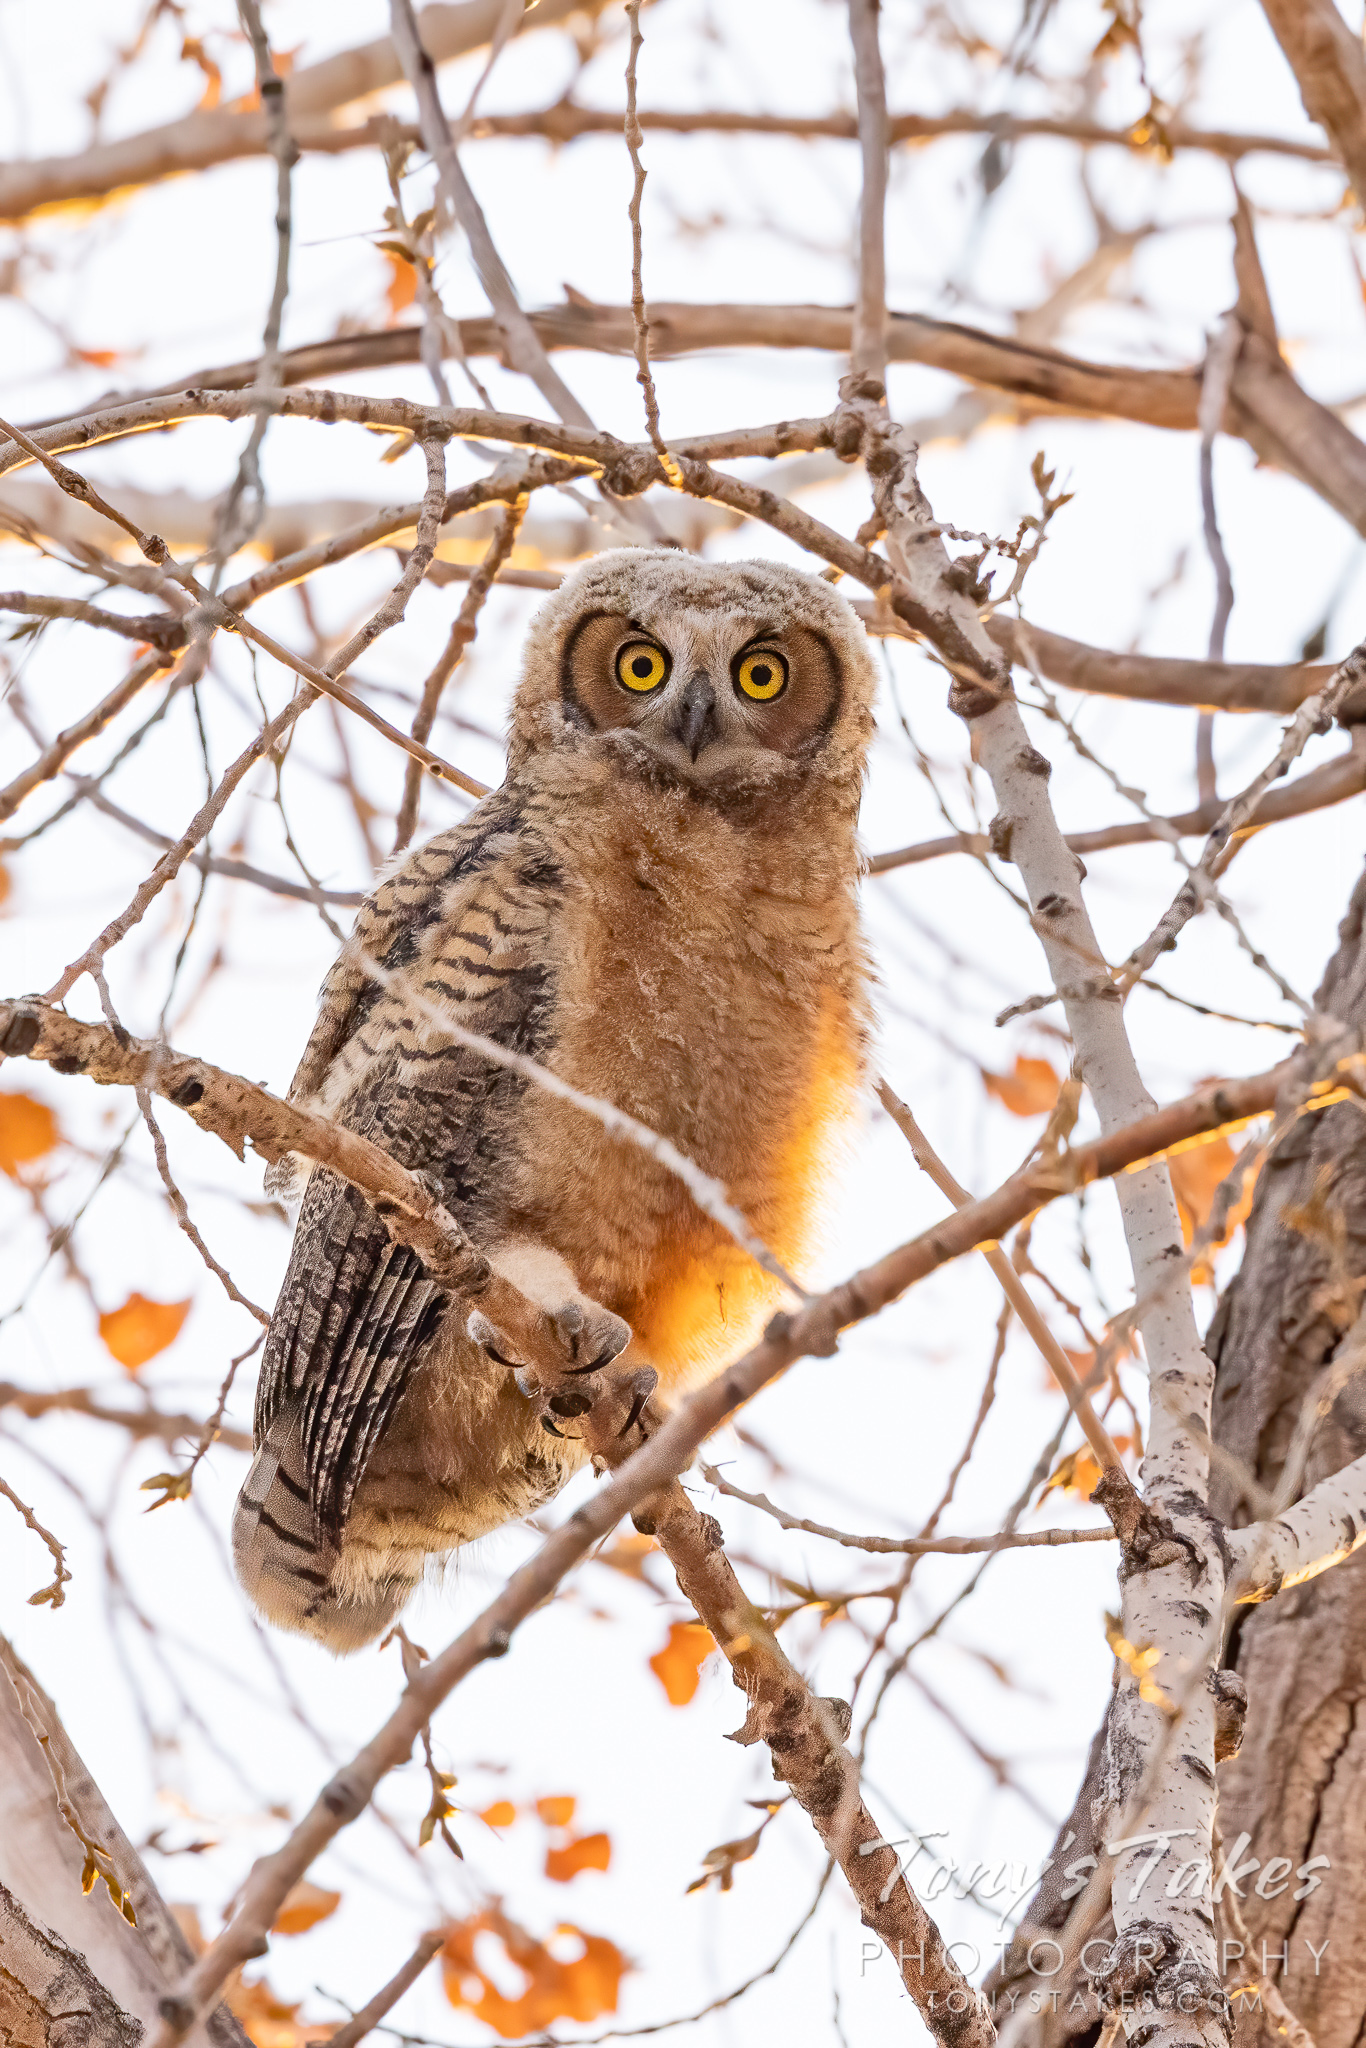 Big-eyed owlet branches out